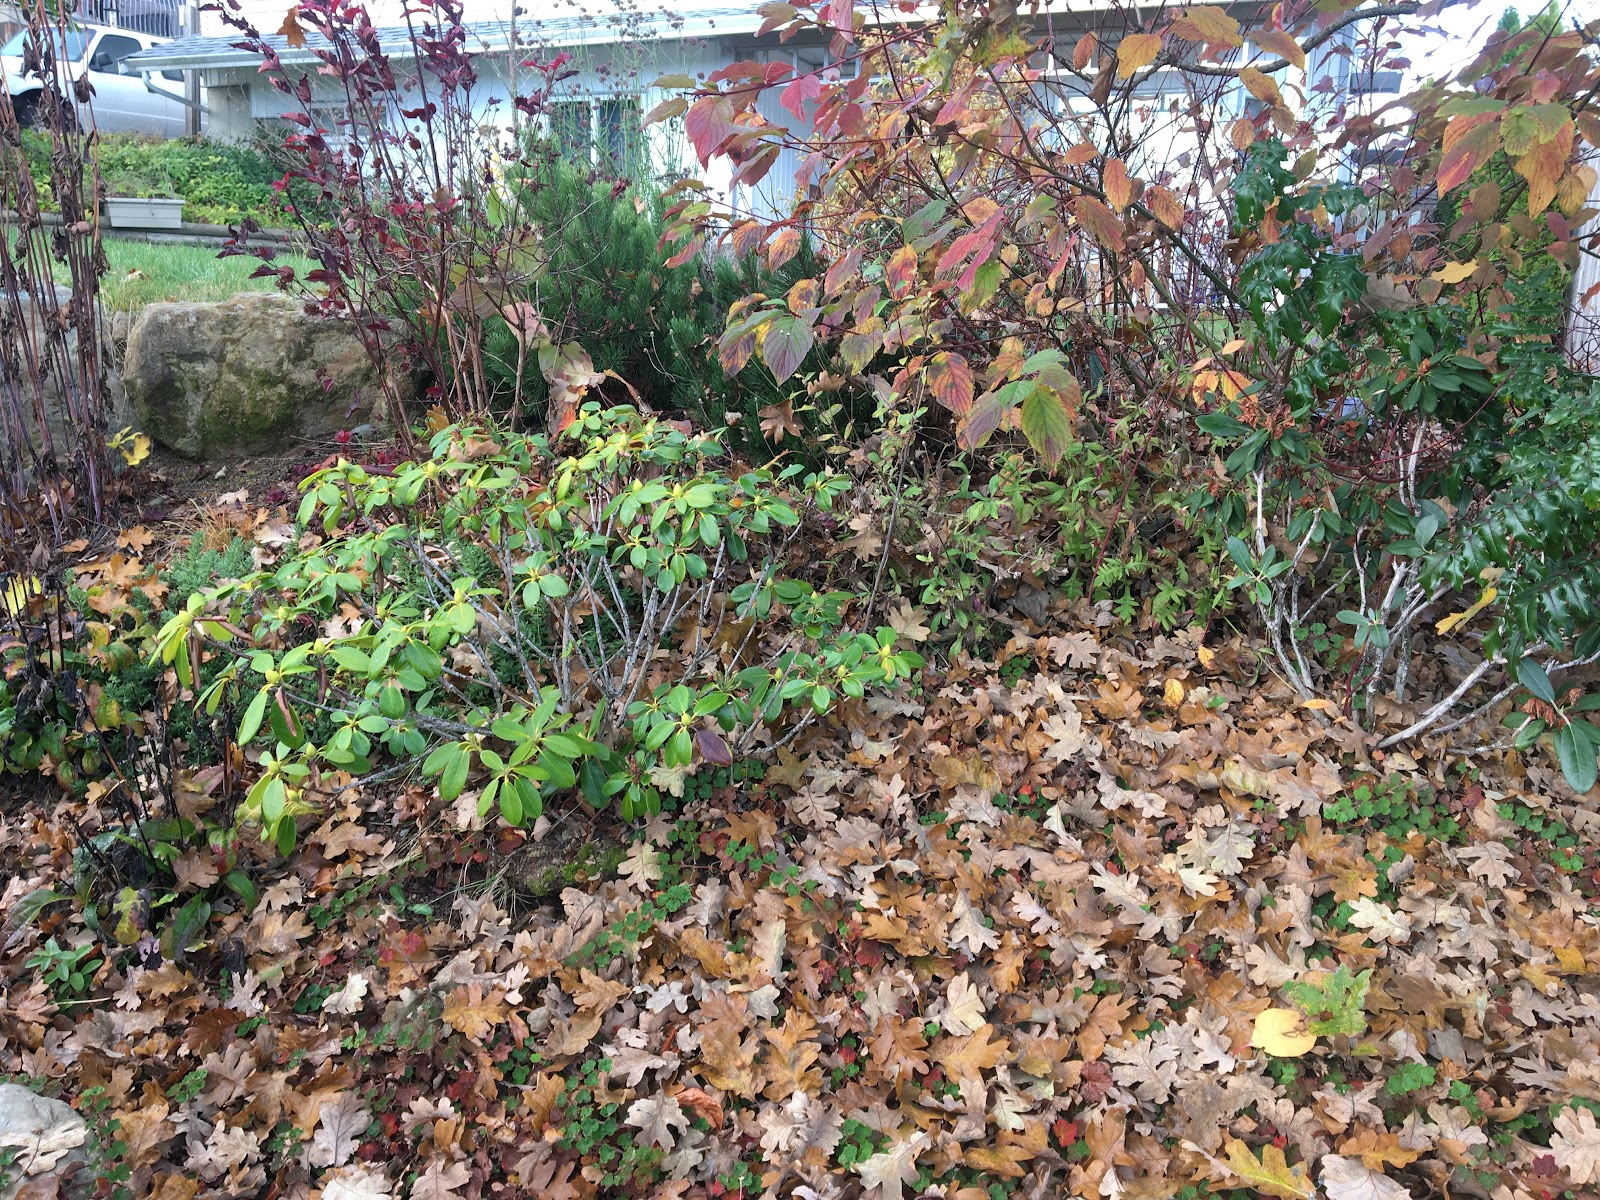 Leaves left in the garden bed as a natural mulch